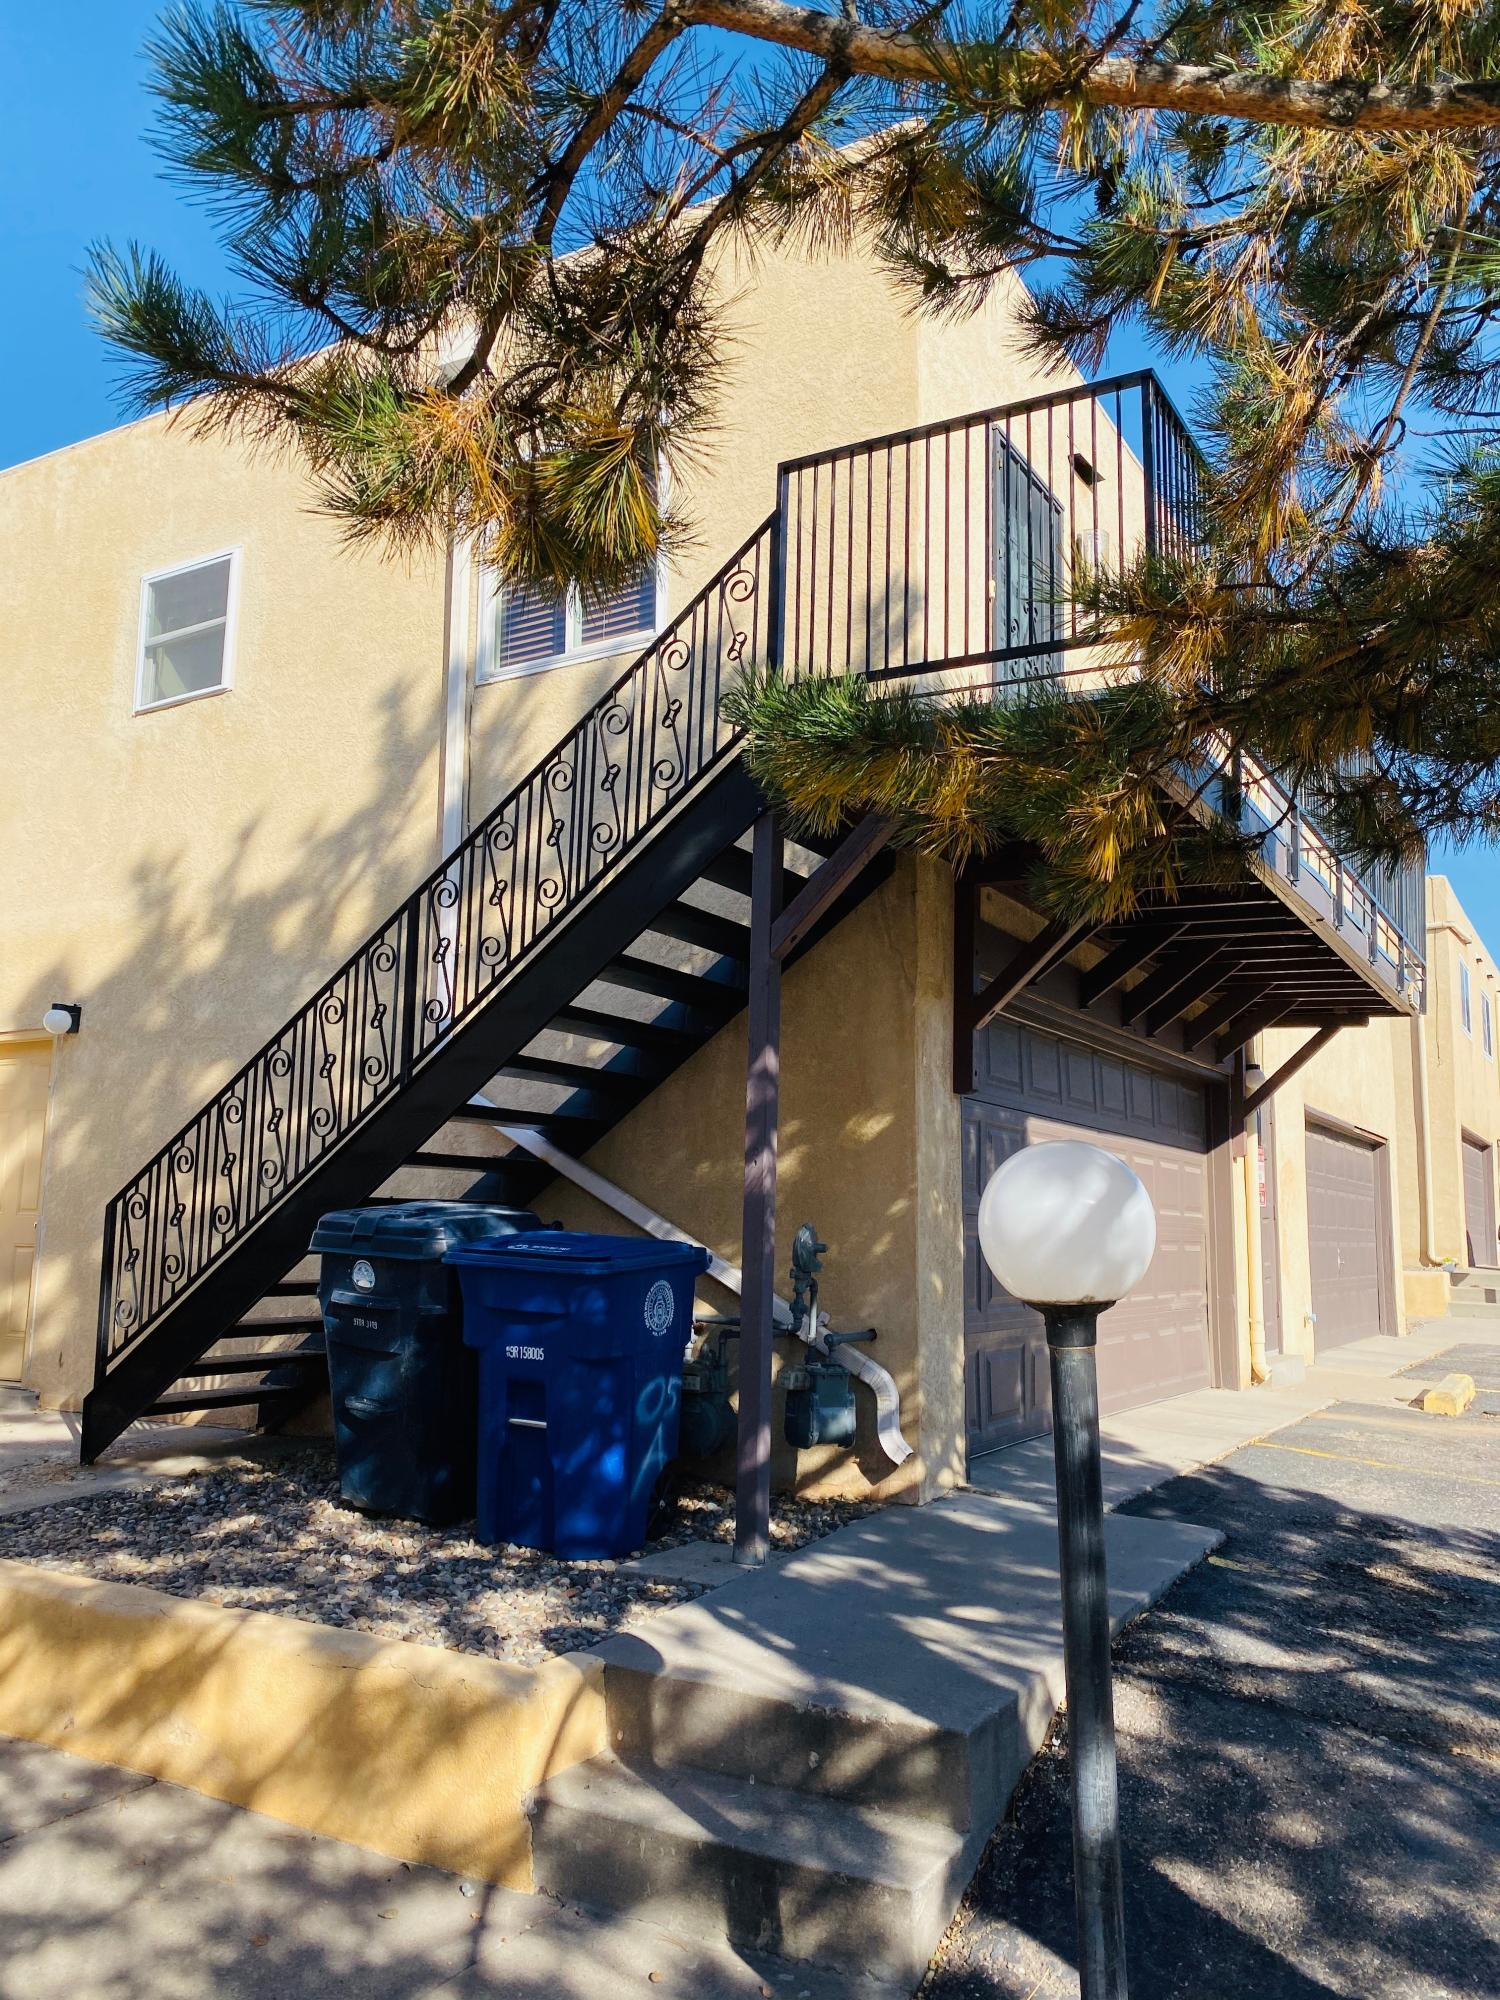 Great updated Condo! Super Cute! Remodeled 2 bedroom 1 bathroom. Shared Garage makes for increased security and parking.Walking distance to Tramway for hiking, biking and walking trails.